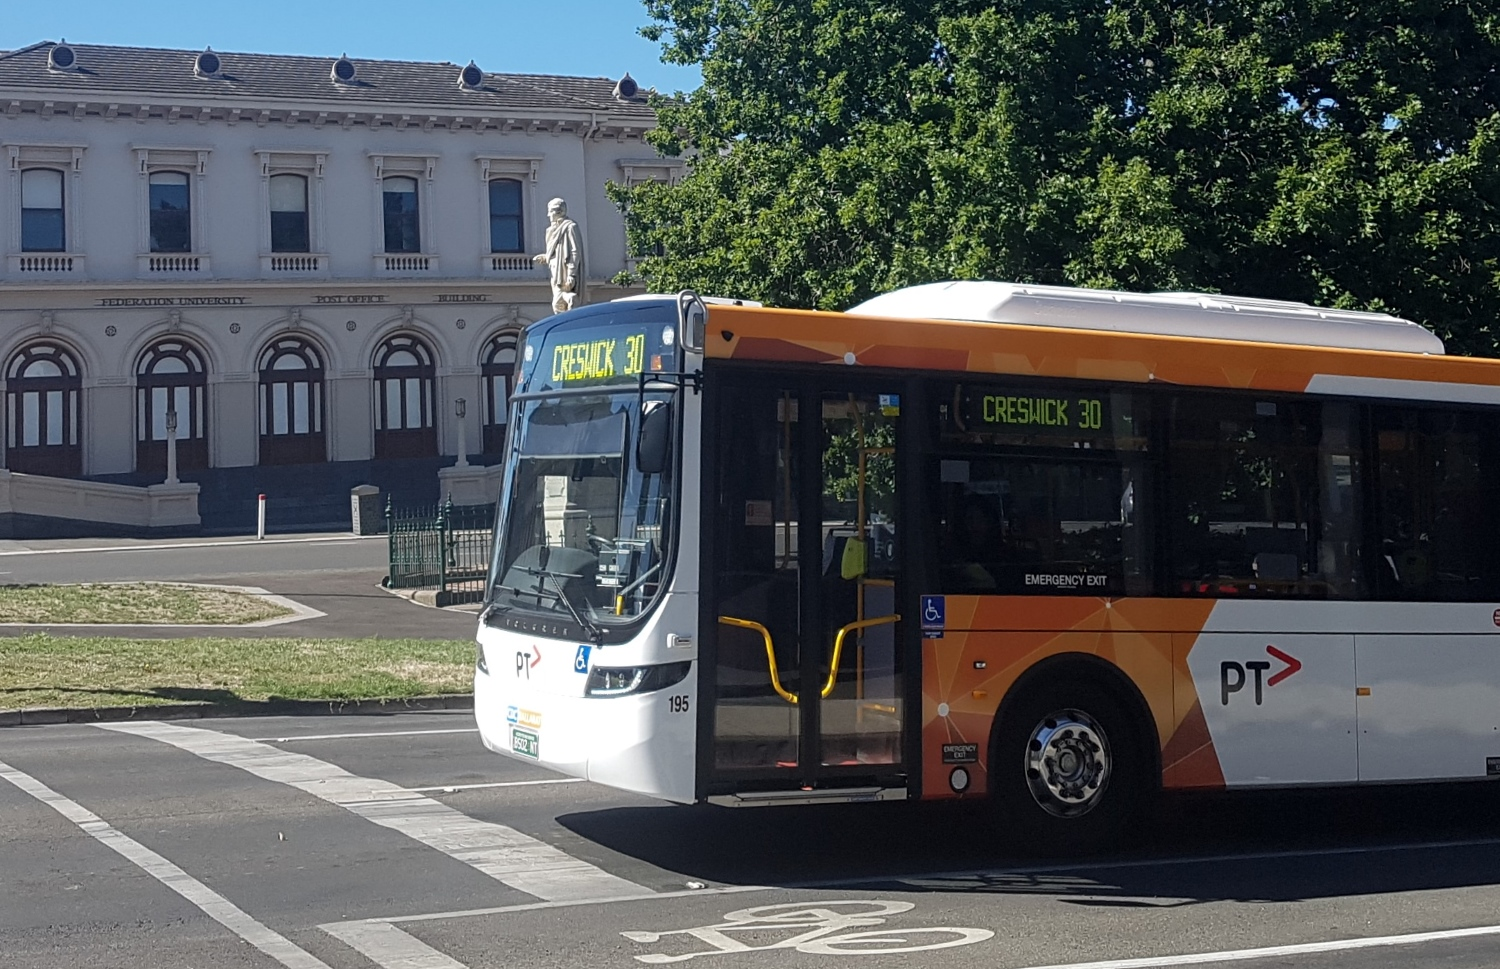 A New Bus Timetable For Ballarat Will Come Into Effect On 27 August To Align With New Train Times But The Public Transport Usersociation Note That Most